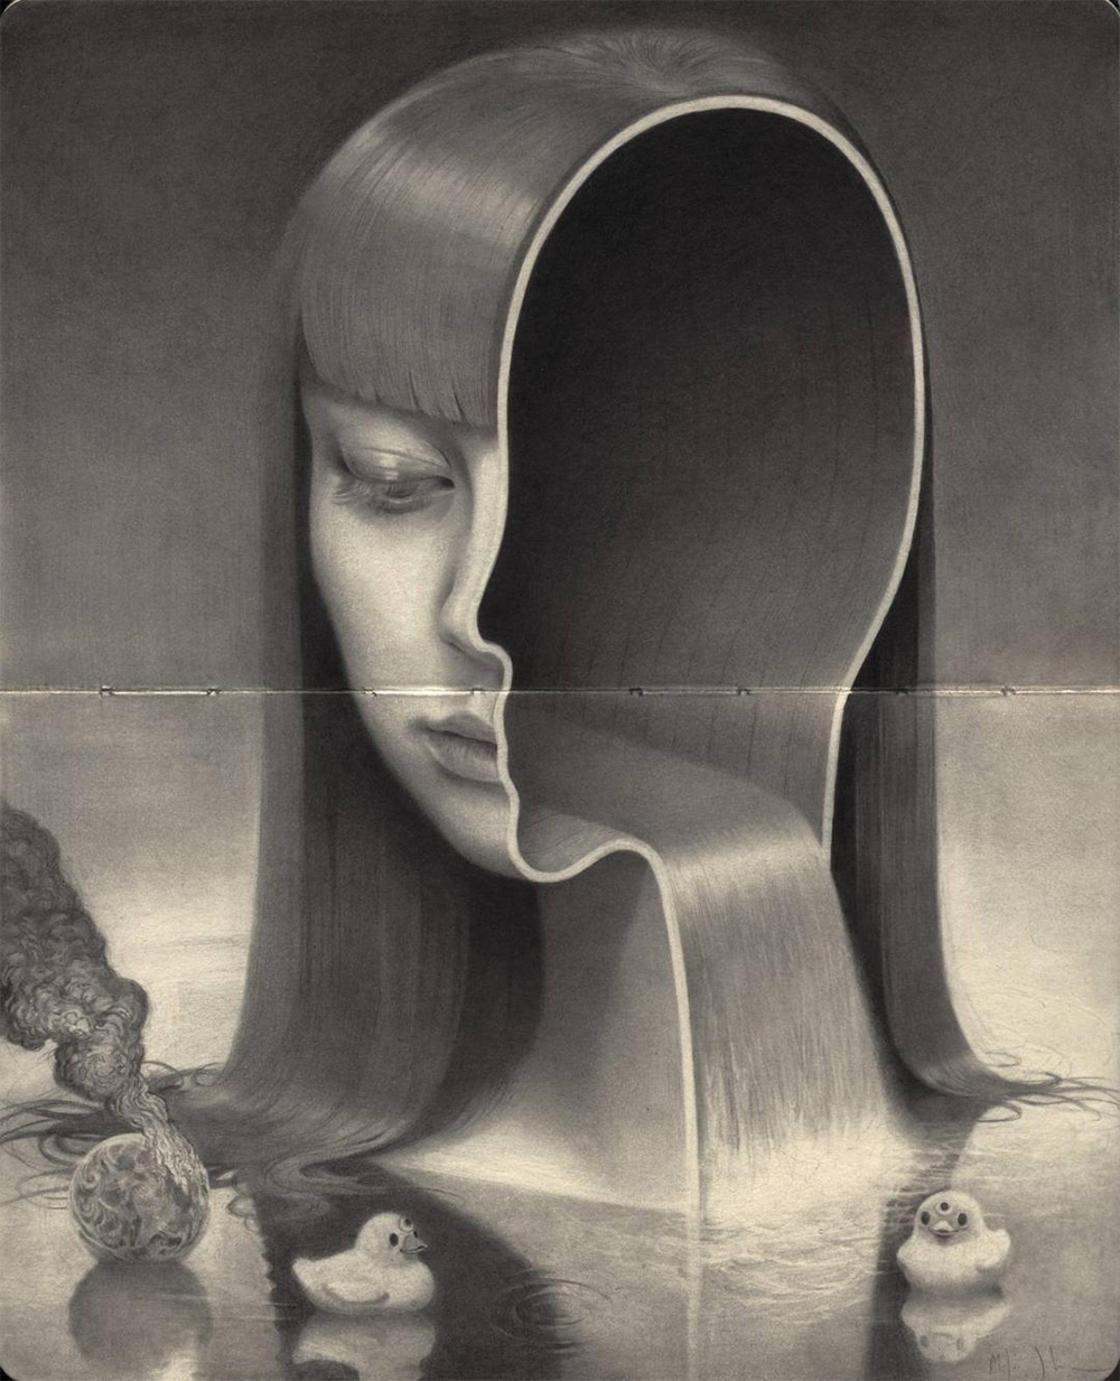 Dualism – The fascinating surreal paintings by Miles Johnston